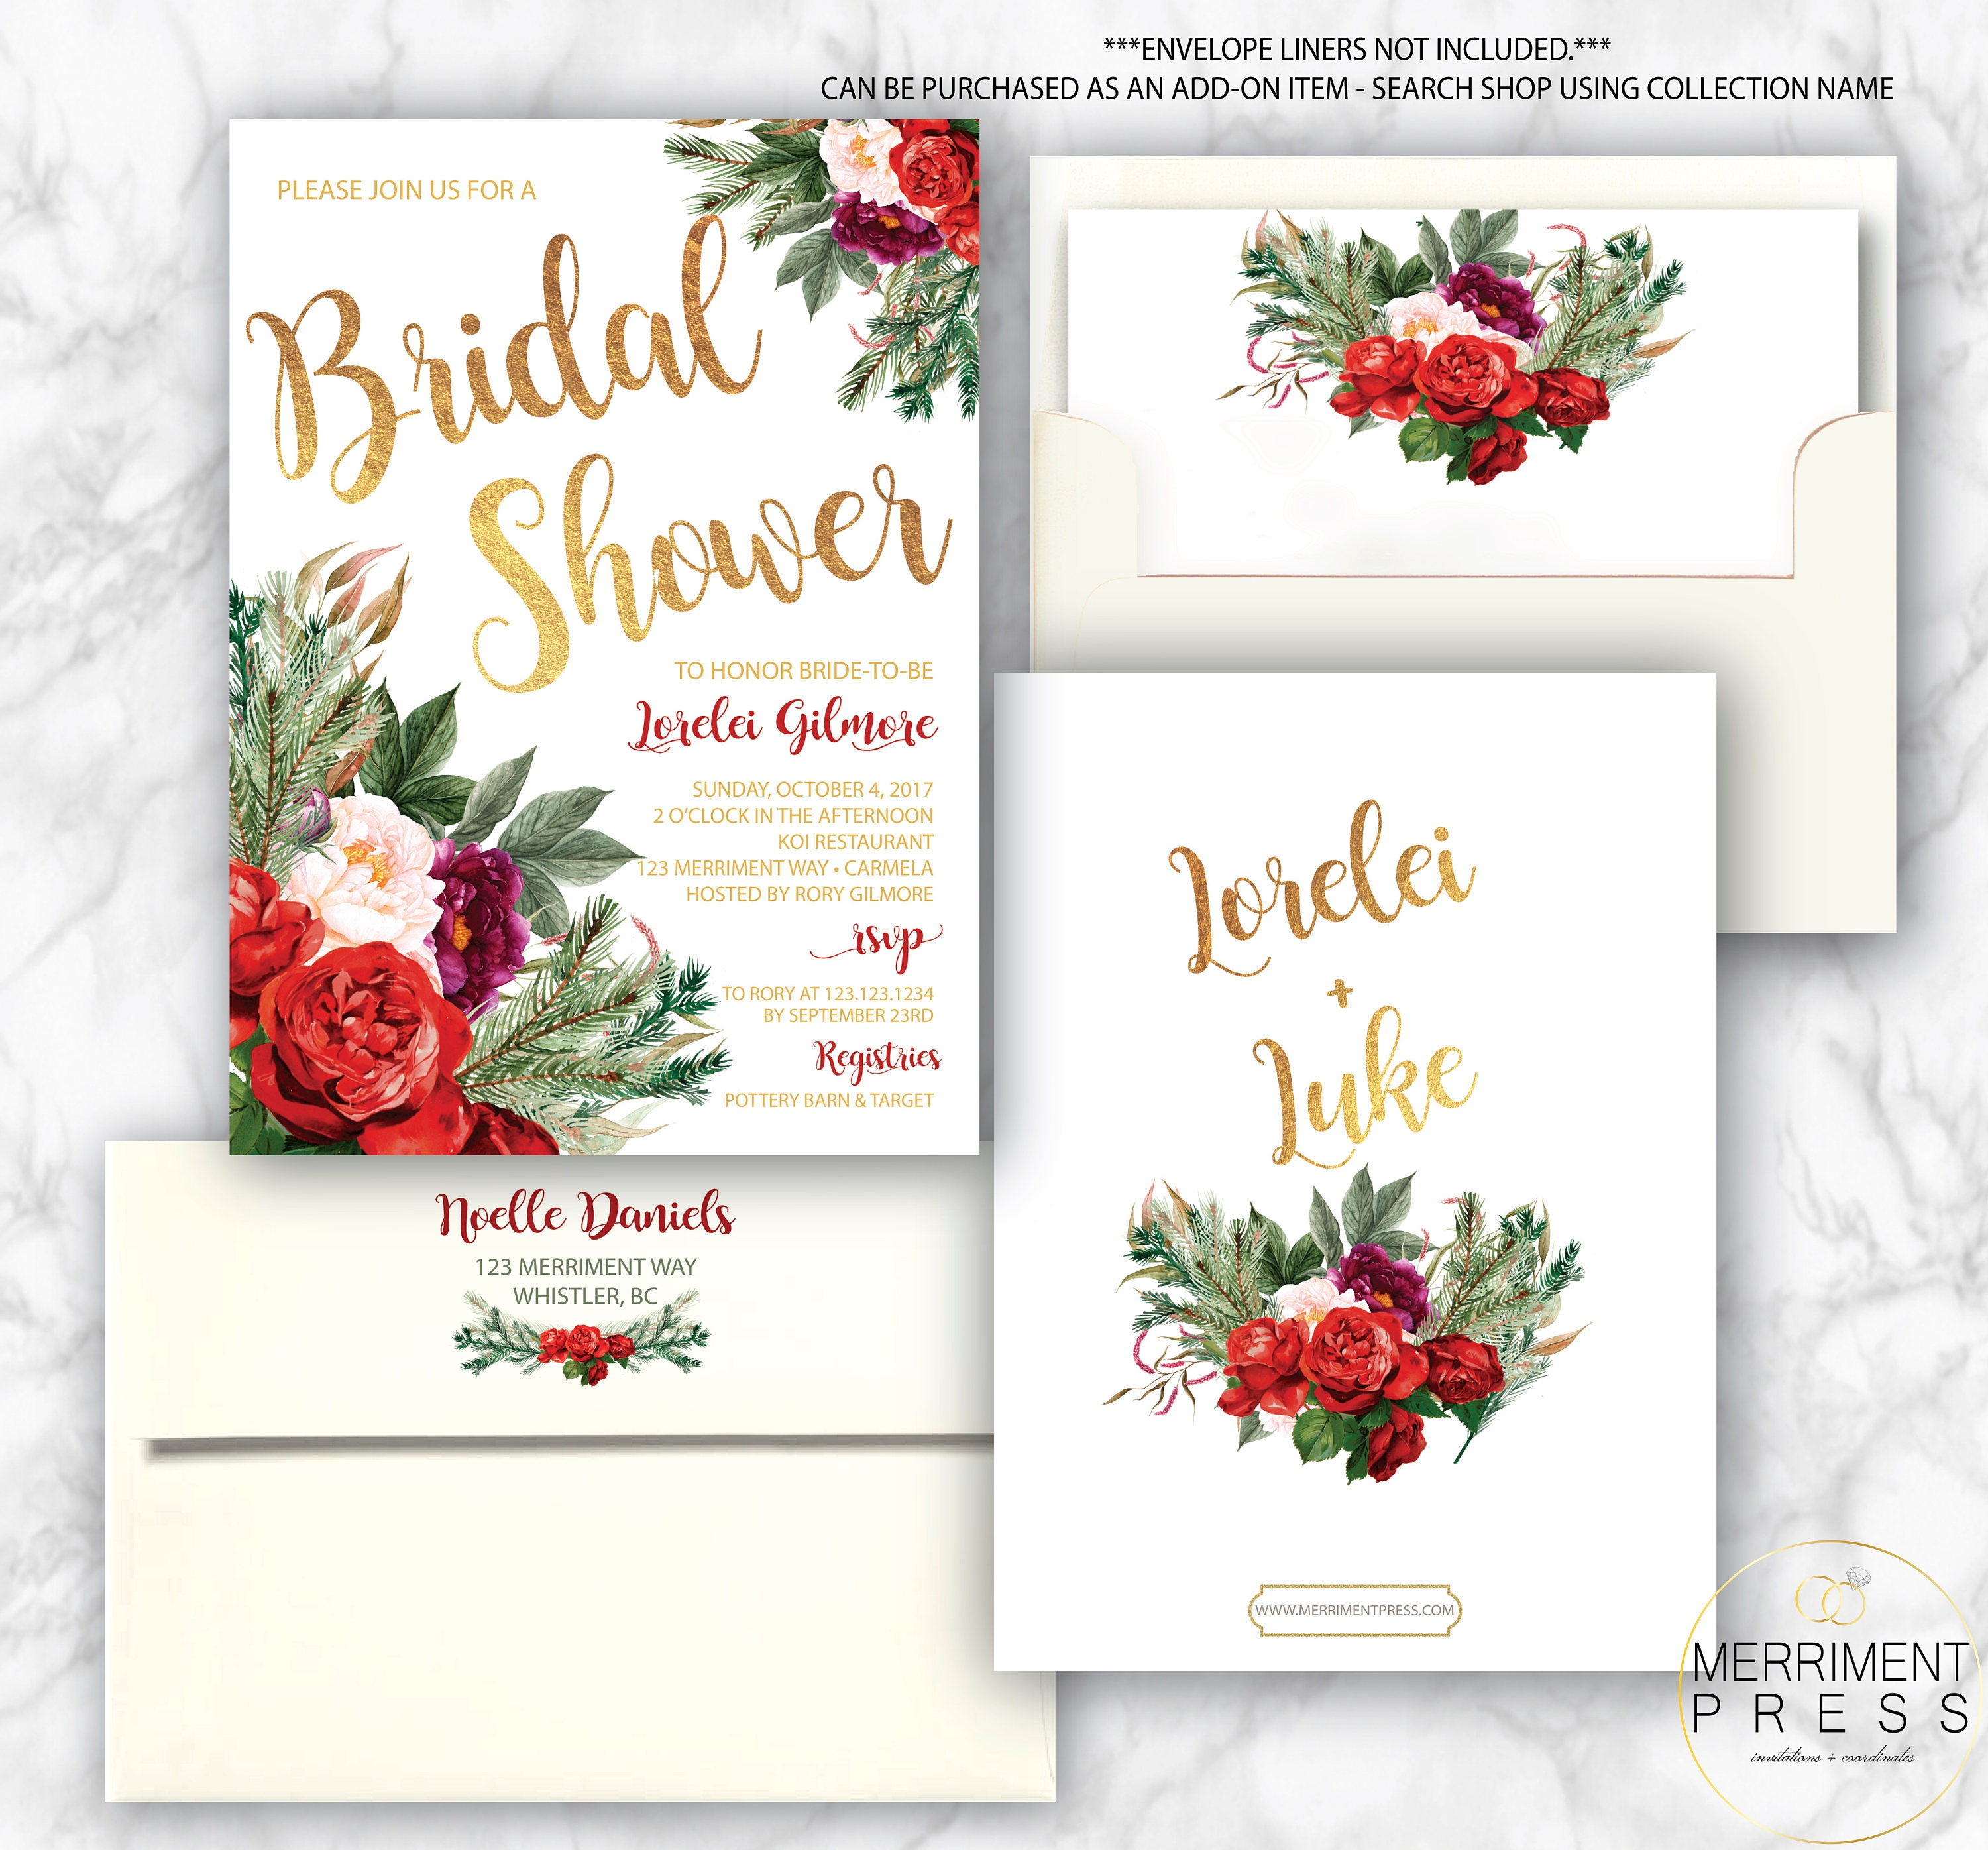 holiday bridal shower invitation christmas bridal shower winter bridal shower red green gold foil whistler collection